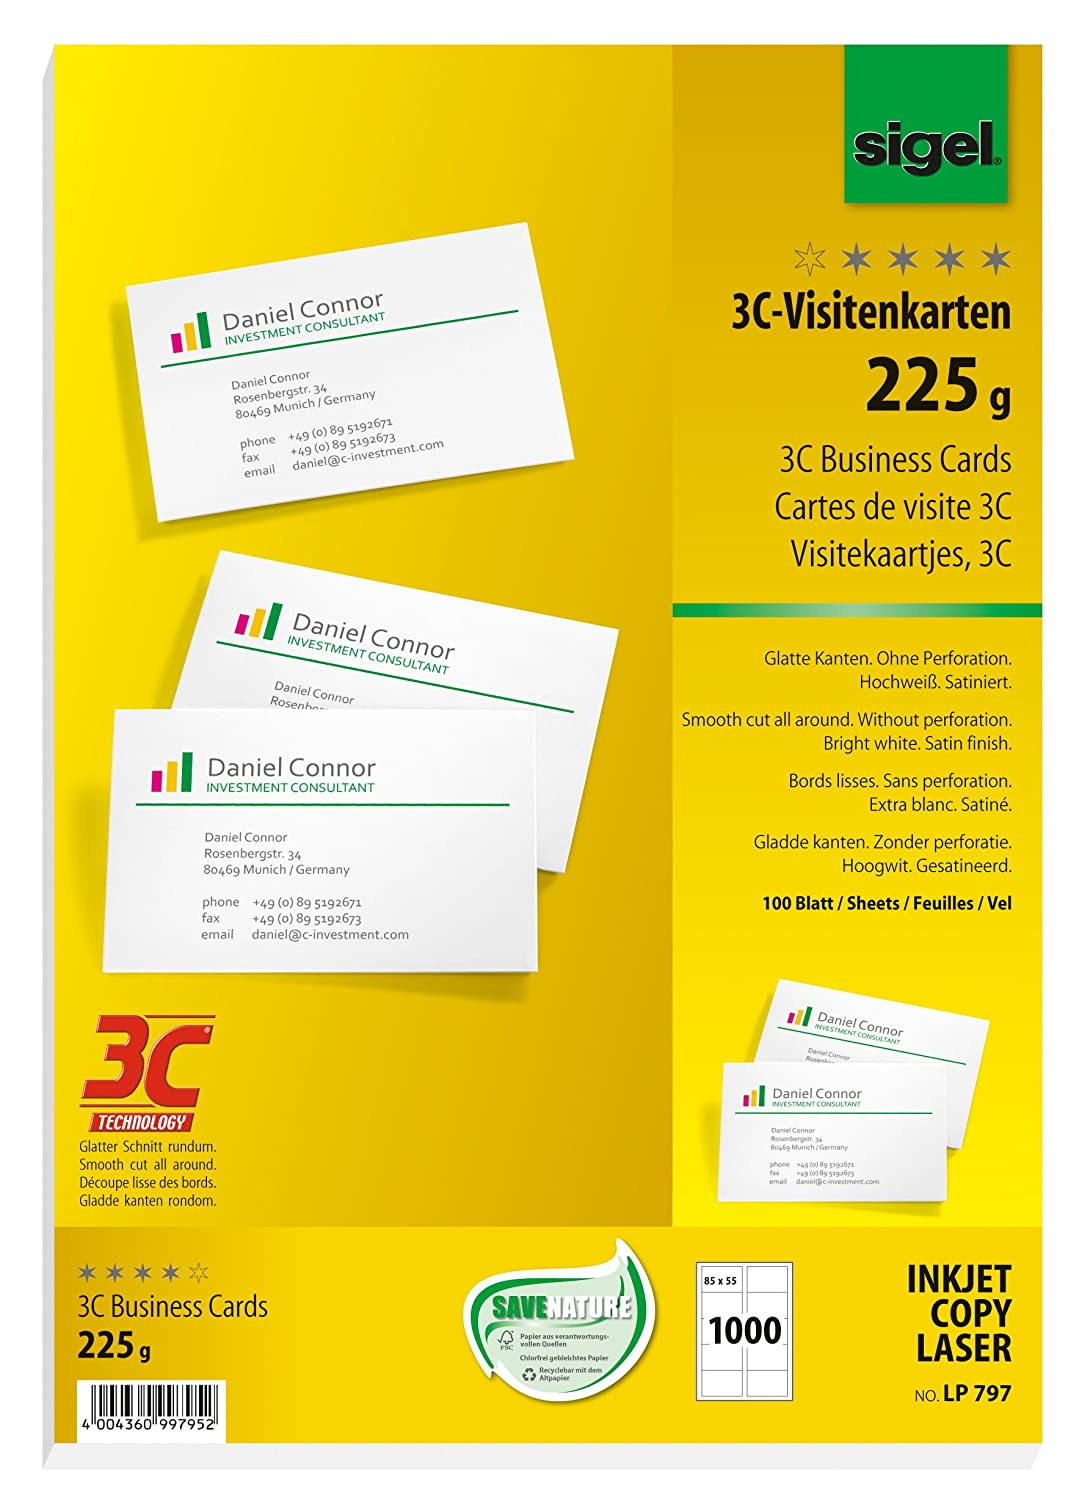 Sigel 225g 85 x 55mm A4 3C Business Cards - Bright White (100 Pieces) LP795